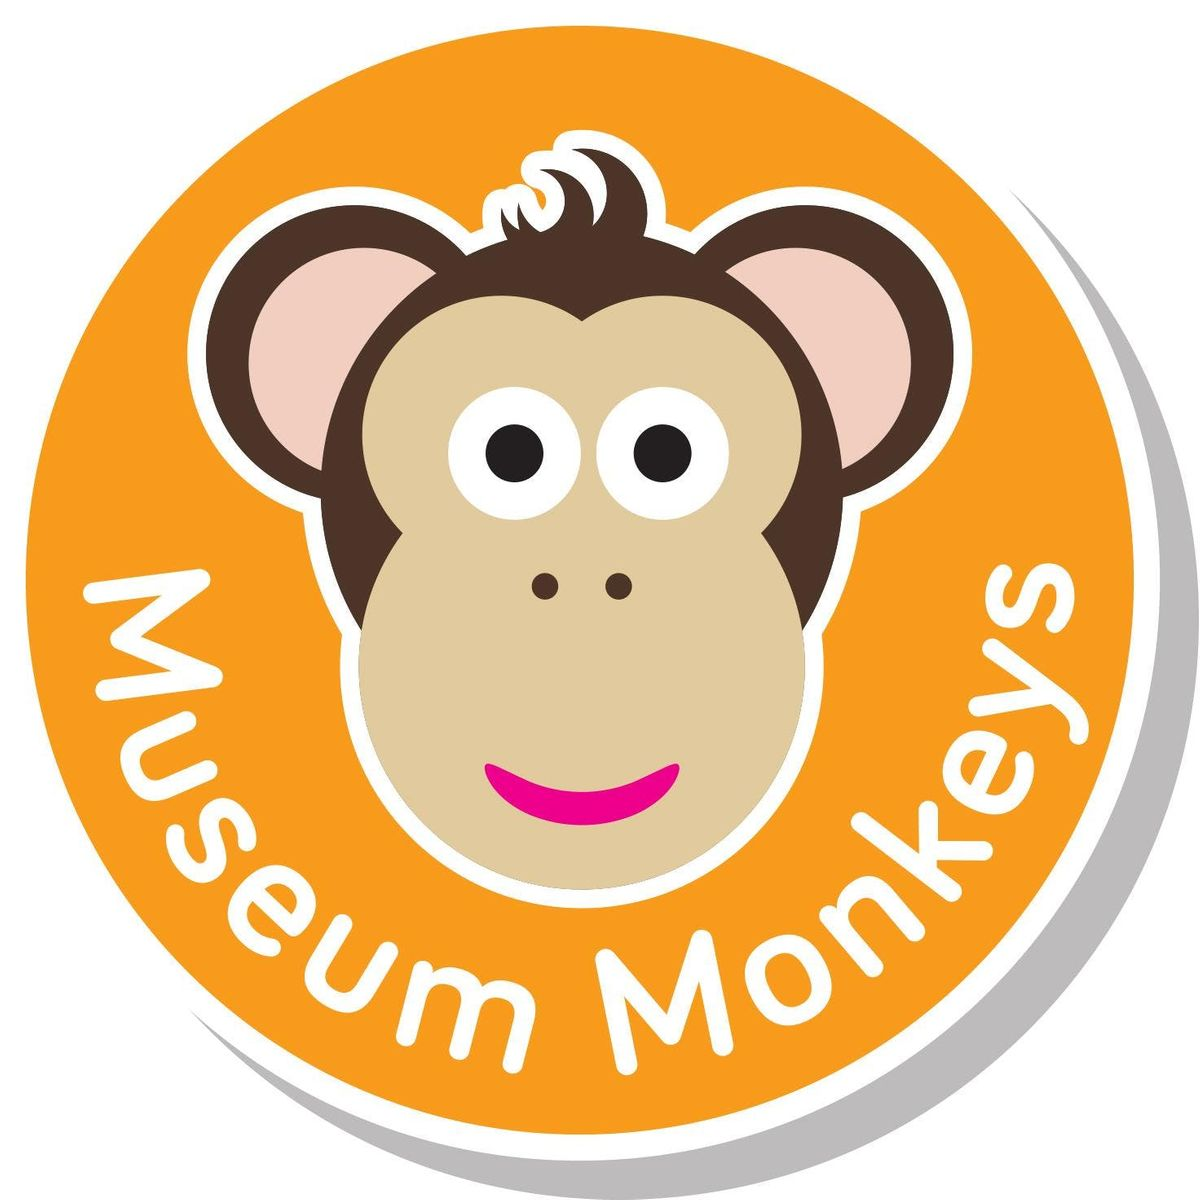 Early Years Explorers Early Years Explorers Christmas special  Thursday 6th December 2018 at York Castle Museum 1000 - 1100